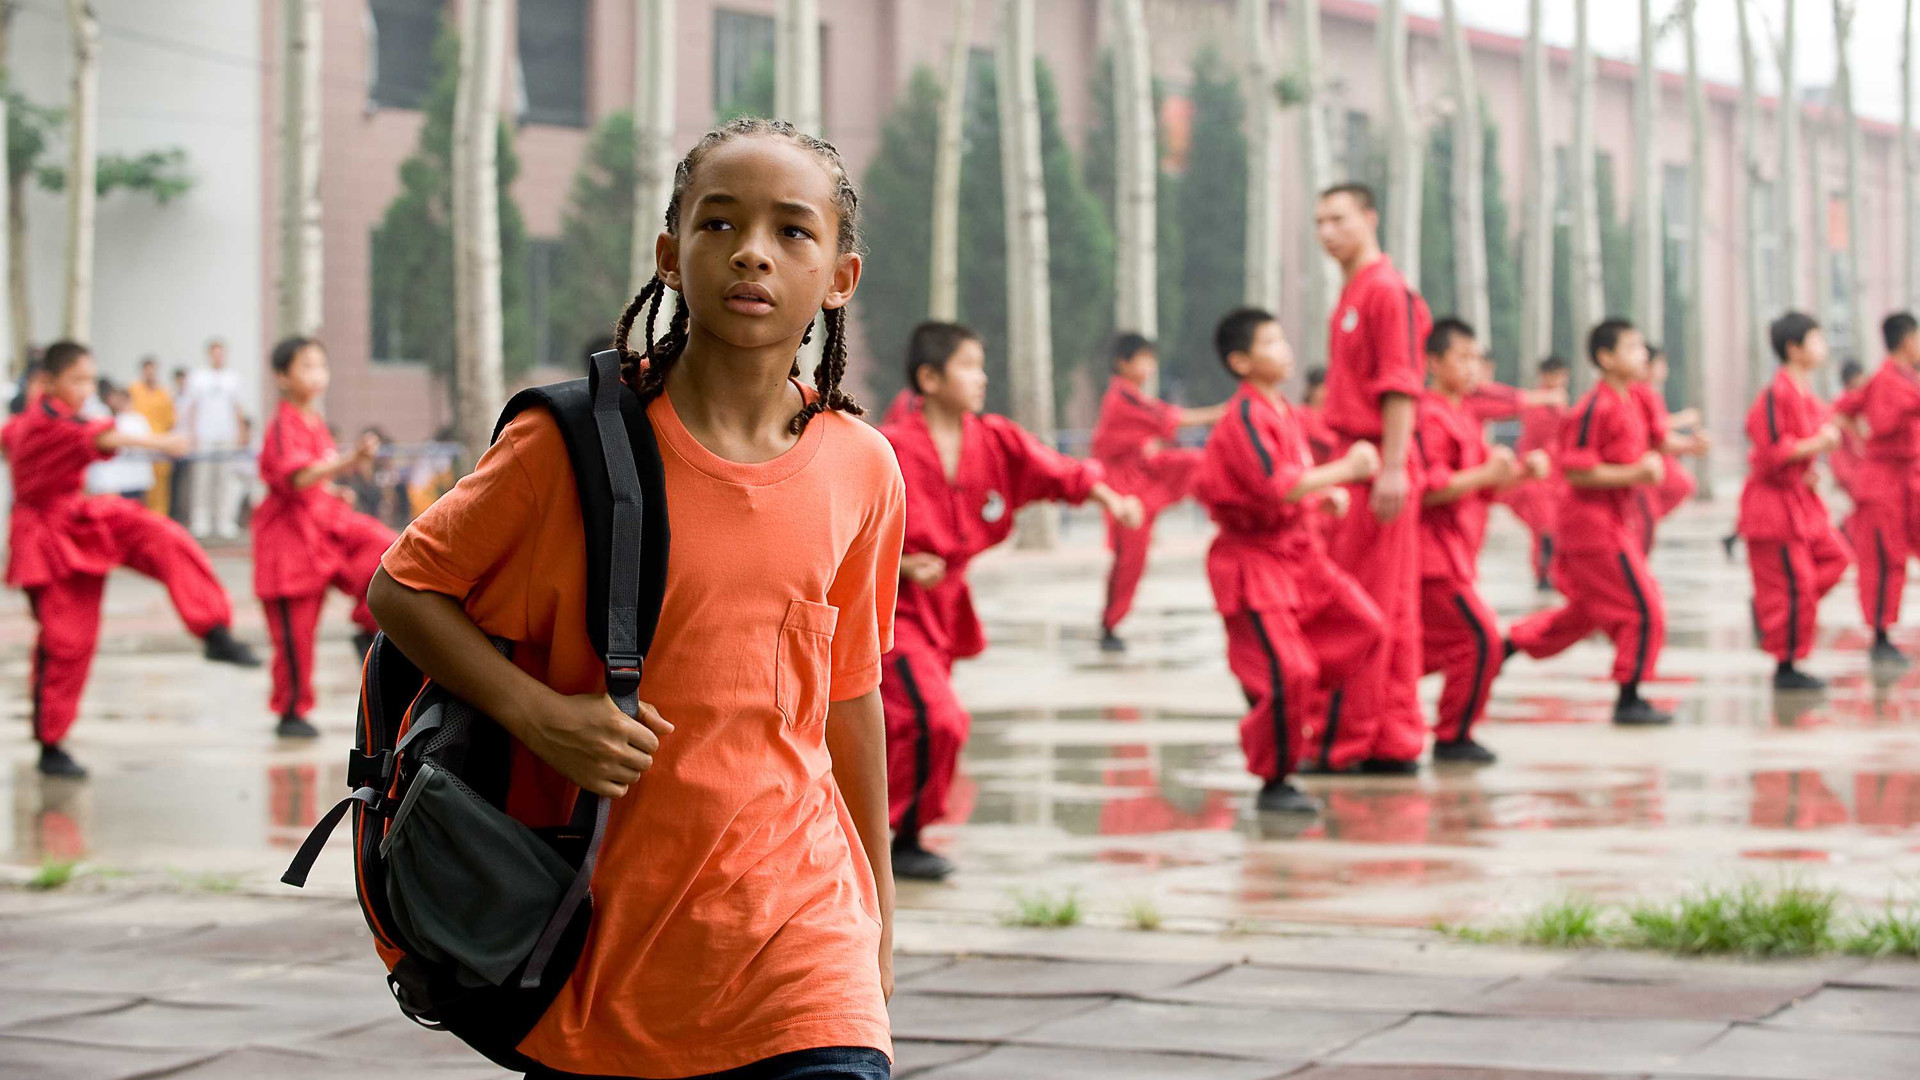 Karate Kid Jaden Smith Training image information